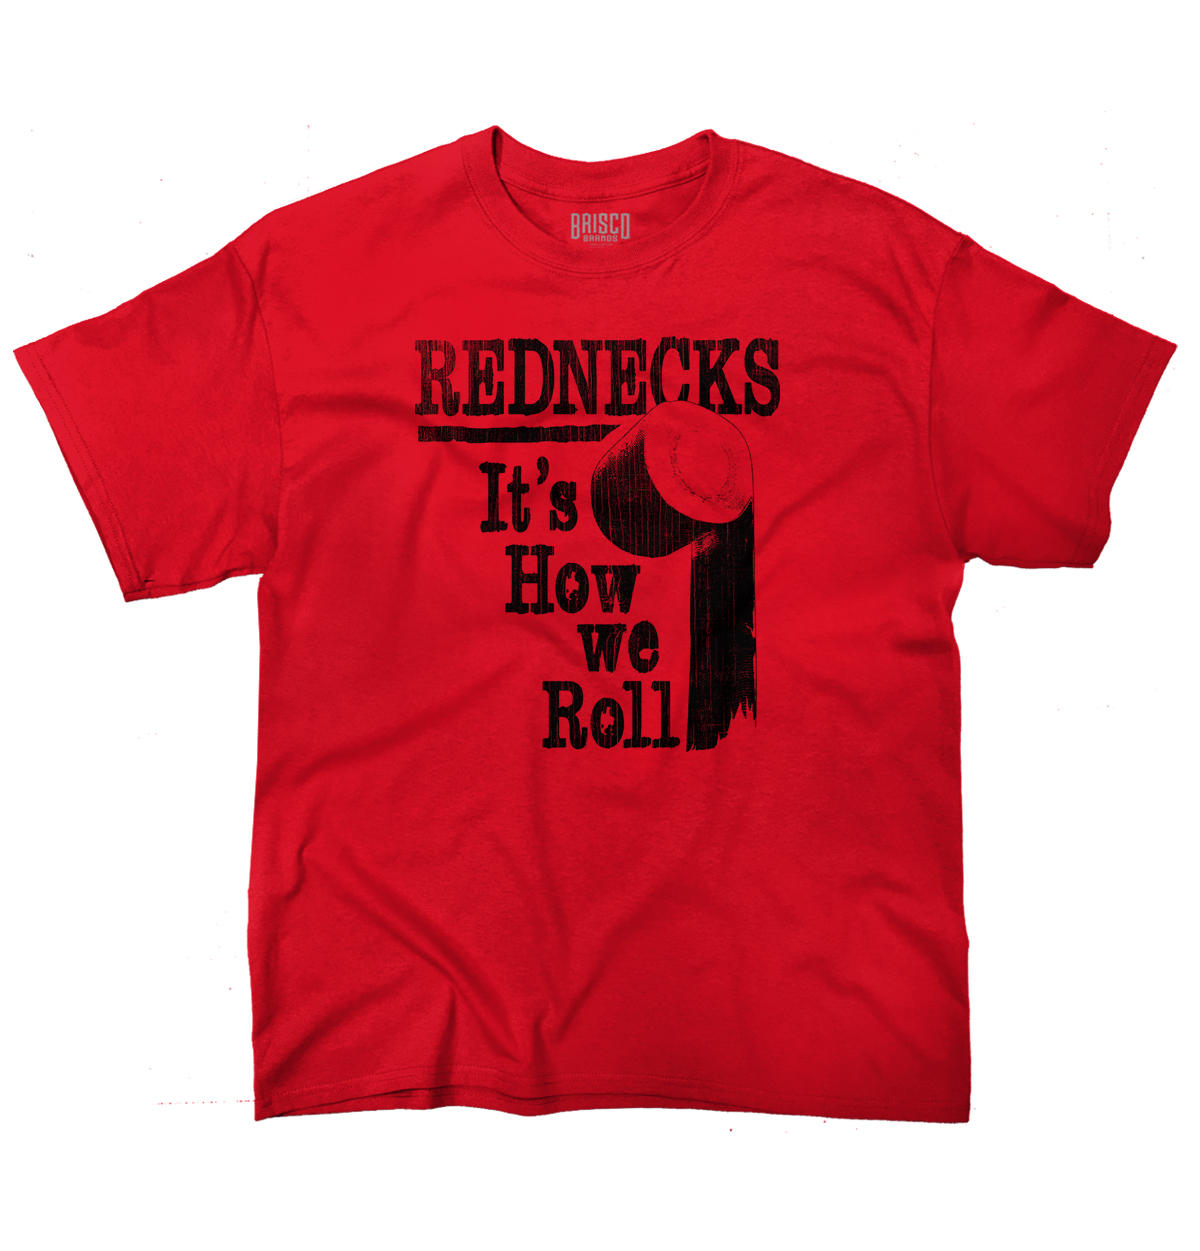 Funny Redneck Life Clothing Drinking How We Roll Youth T-Shirt by Brisco Brands